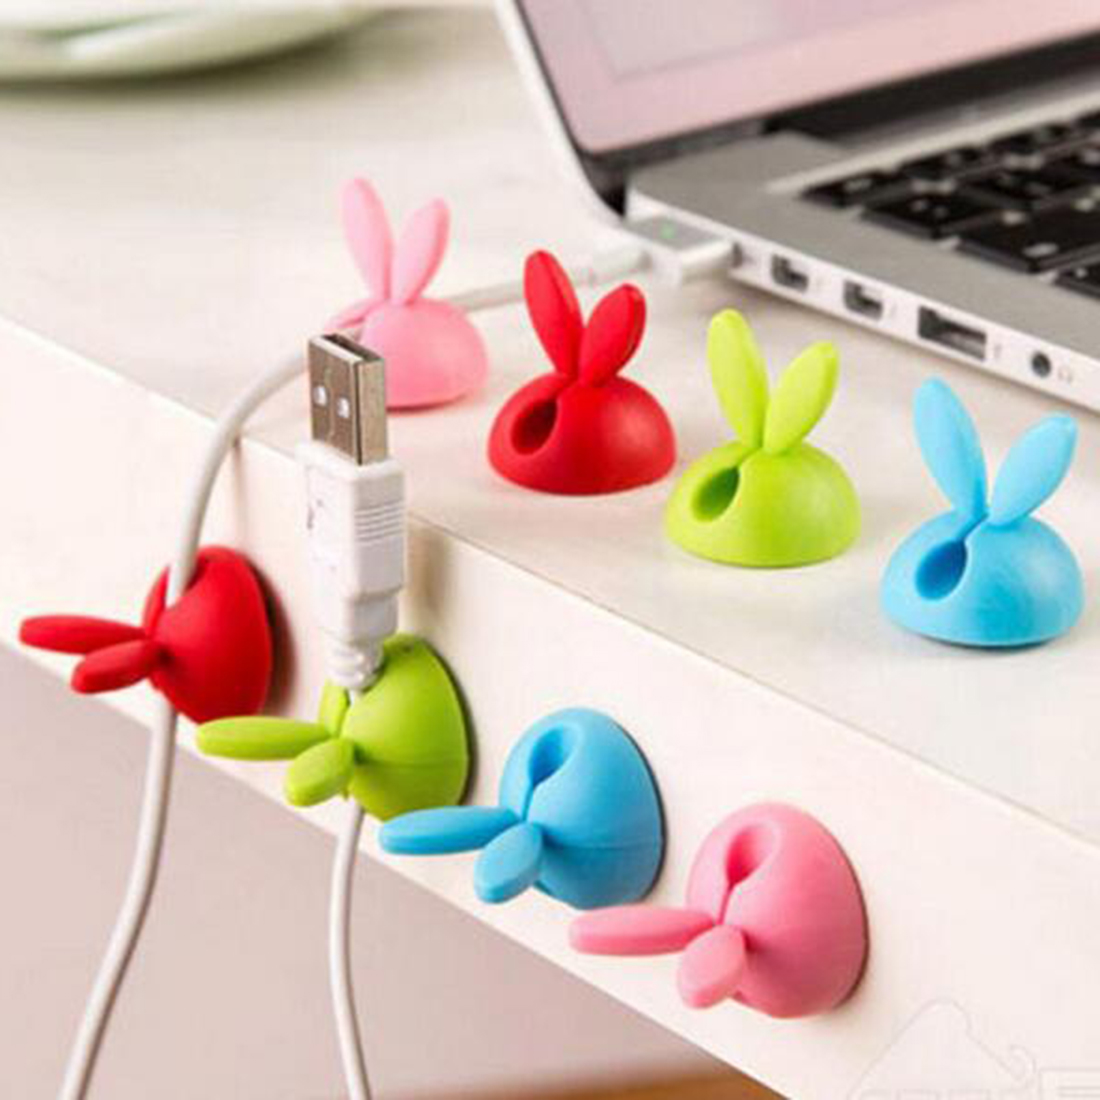 Cable Winder Digital Cables Faithful Marsnaska 4pcs Bunny Ear Rabbit Cable Clips Cord Ties Holder Cable Fastener Desk Tidy Organiser Wire Cord Usb Charger Holder Relieving Rheumatism